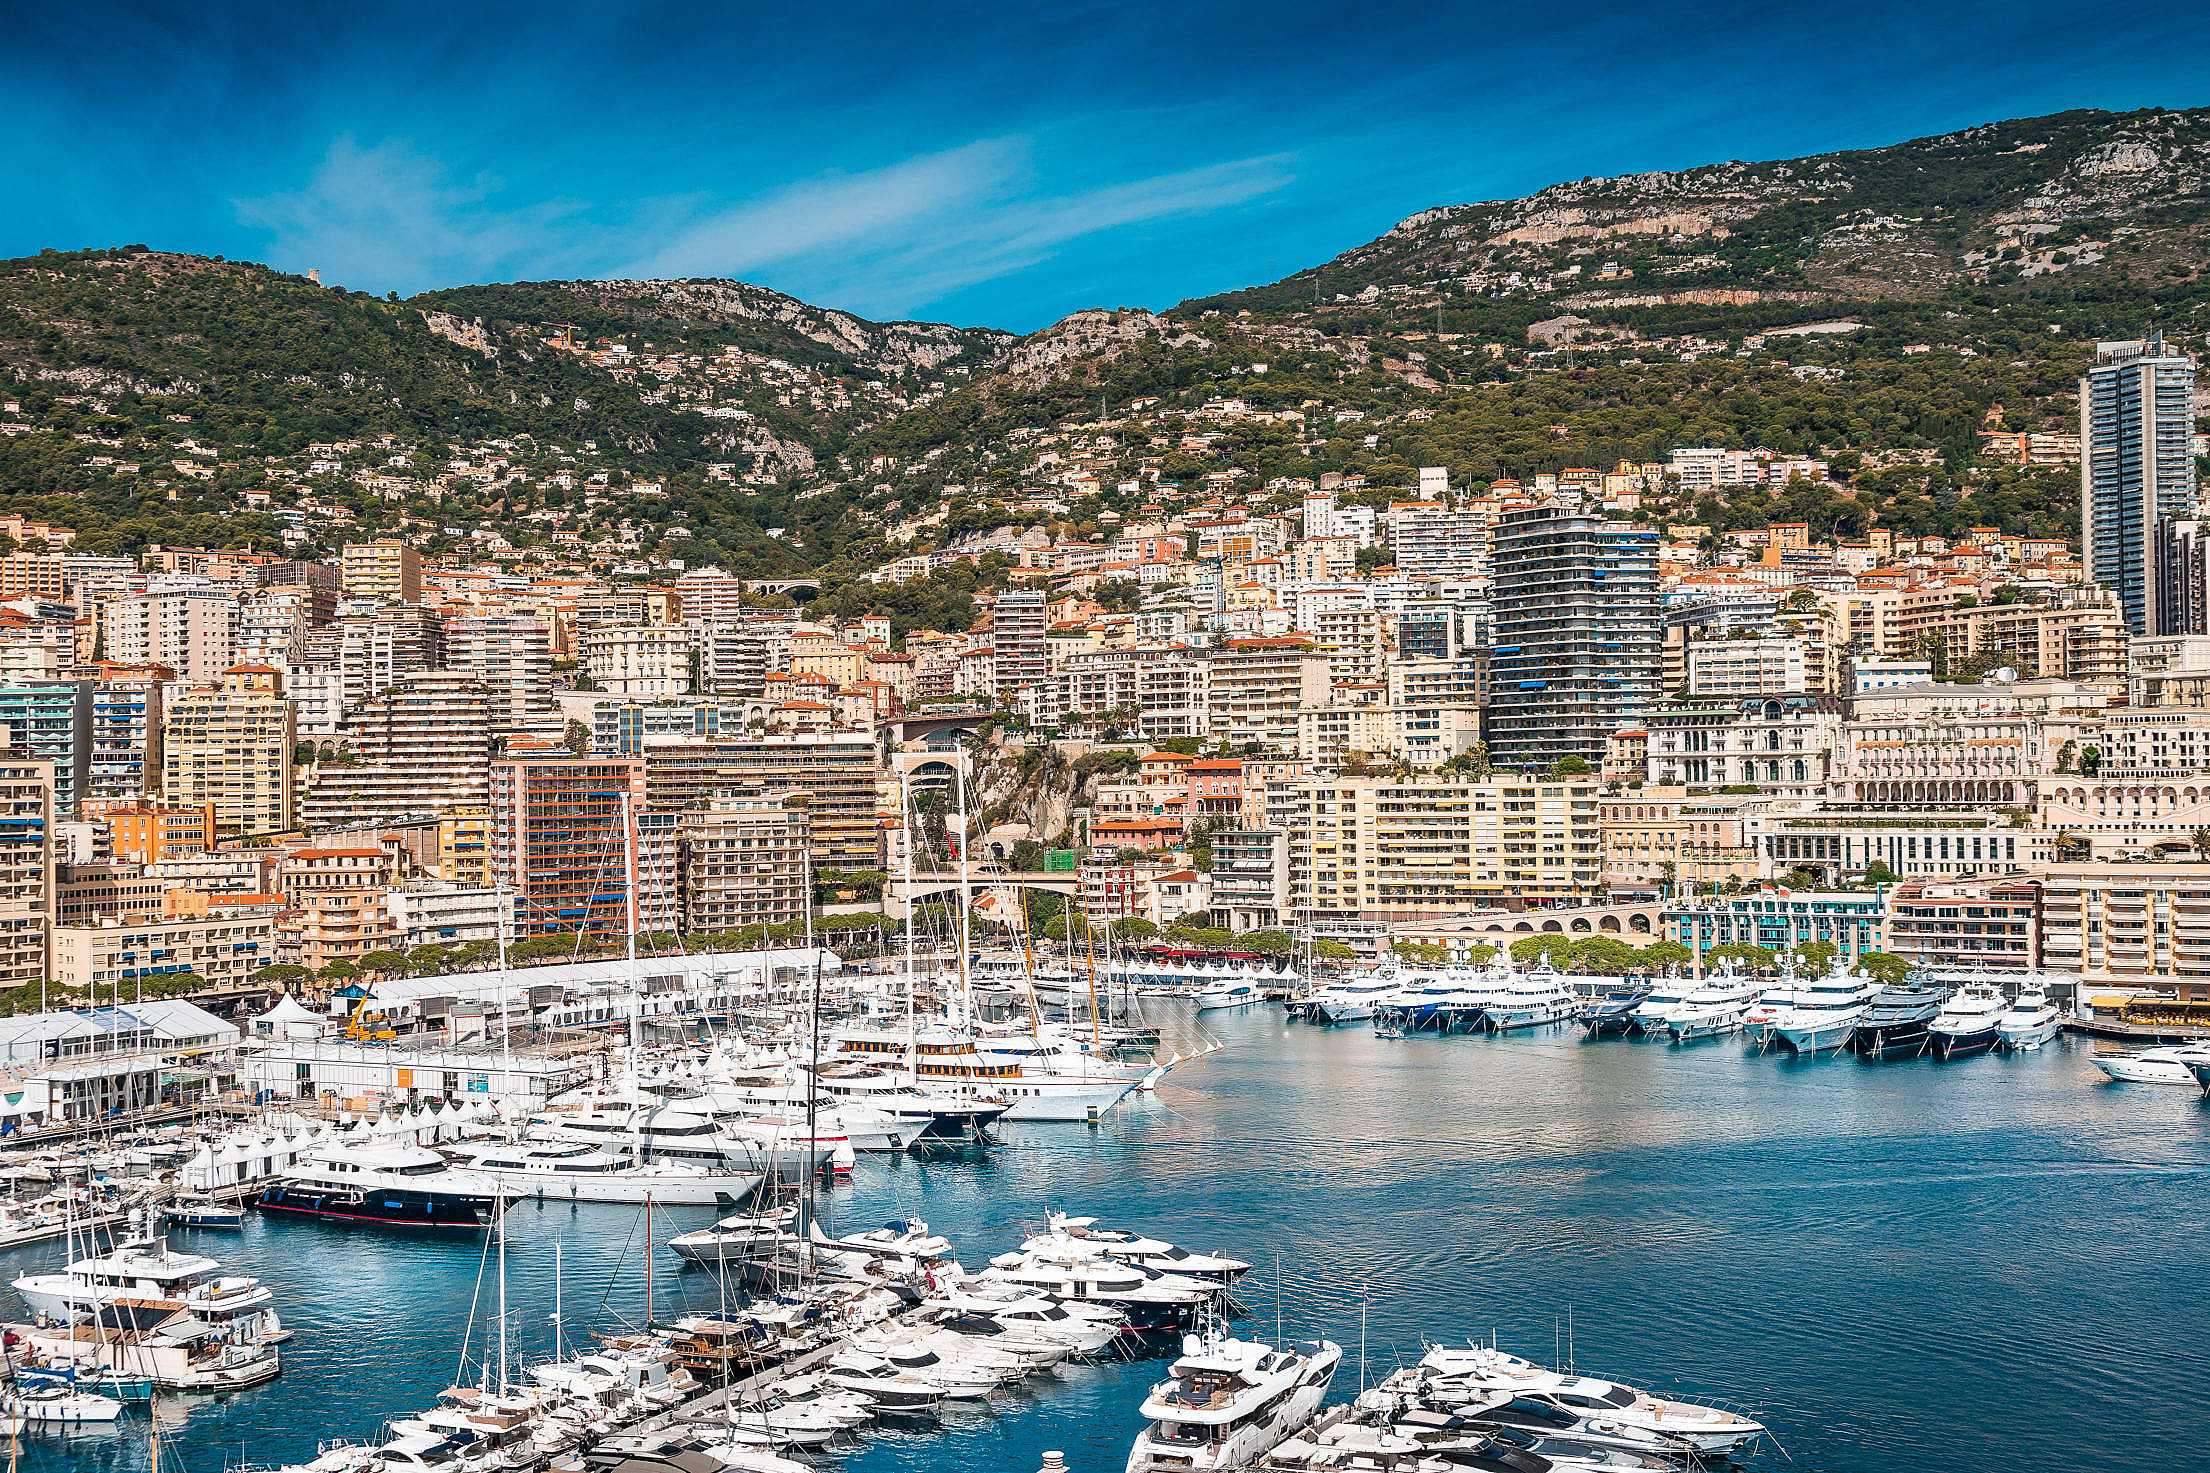 Hercules Port in Monaco with Luxury Yachts Free Stock Photo